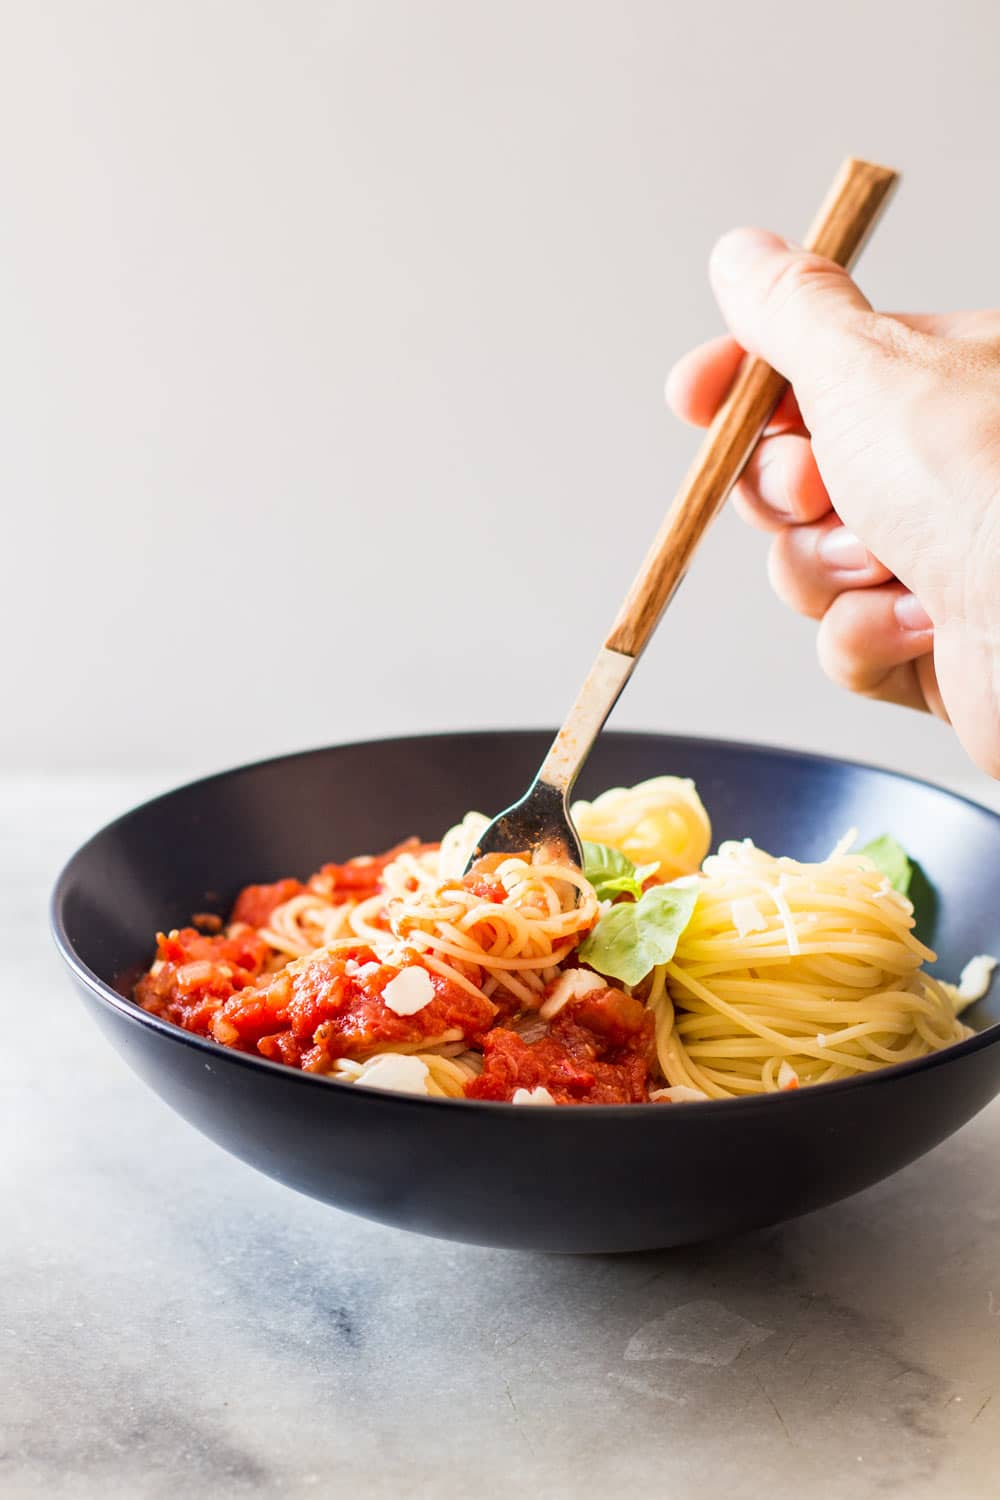 Hand grabbing some Capellini pasta with Roasted Garlic Tomato Sauce with a fork.